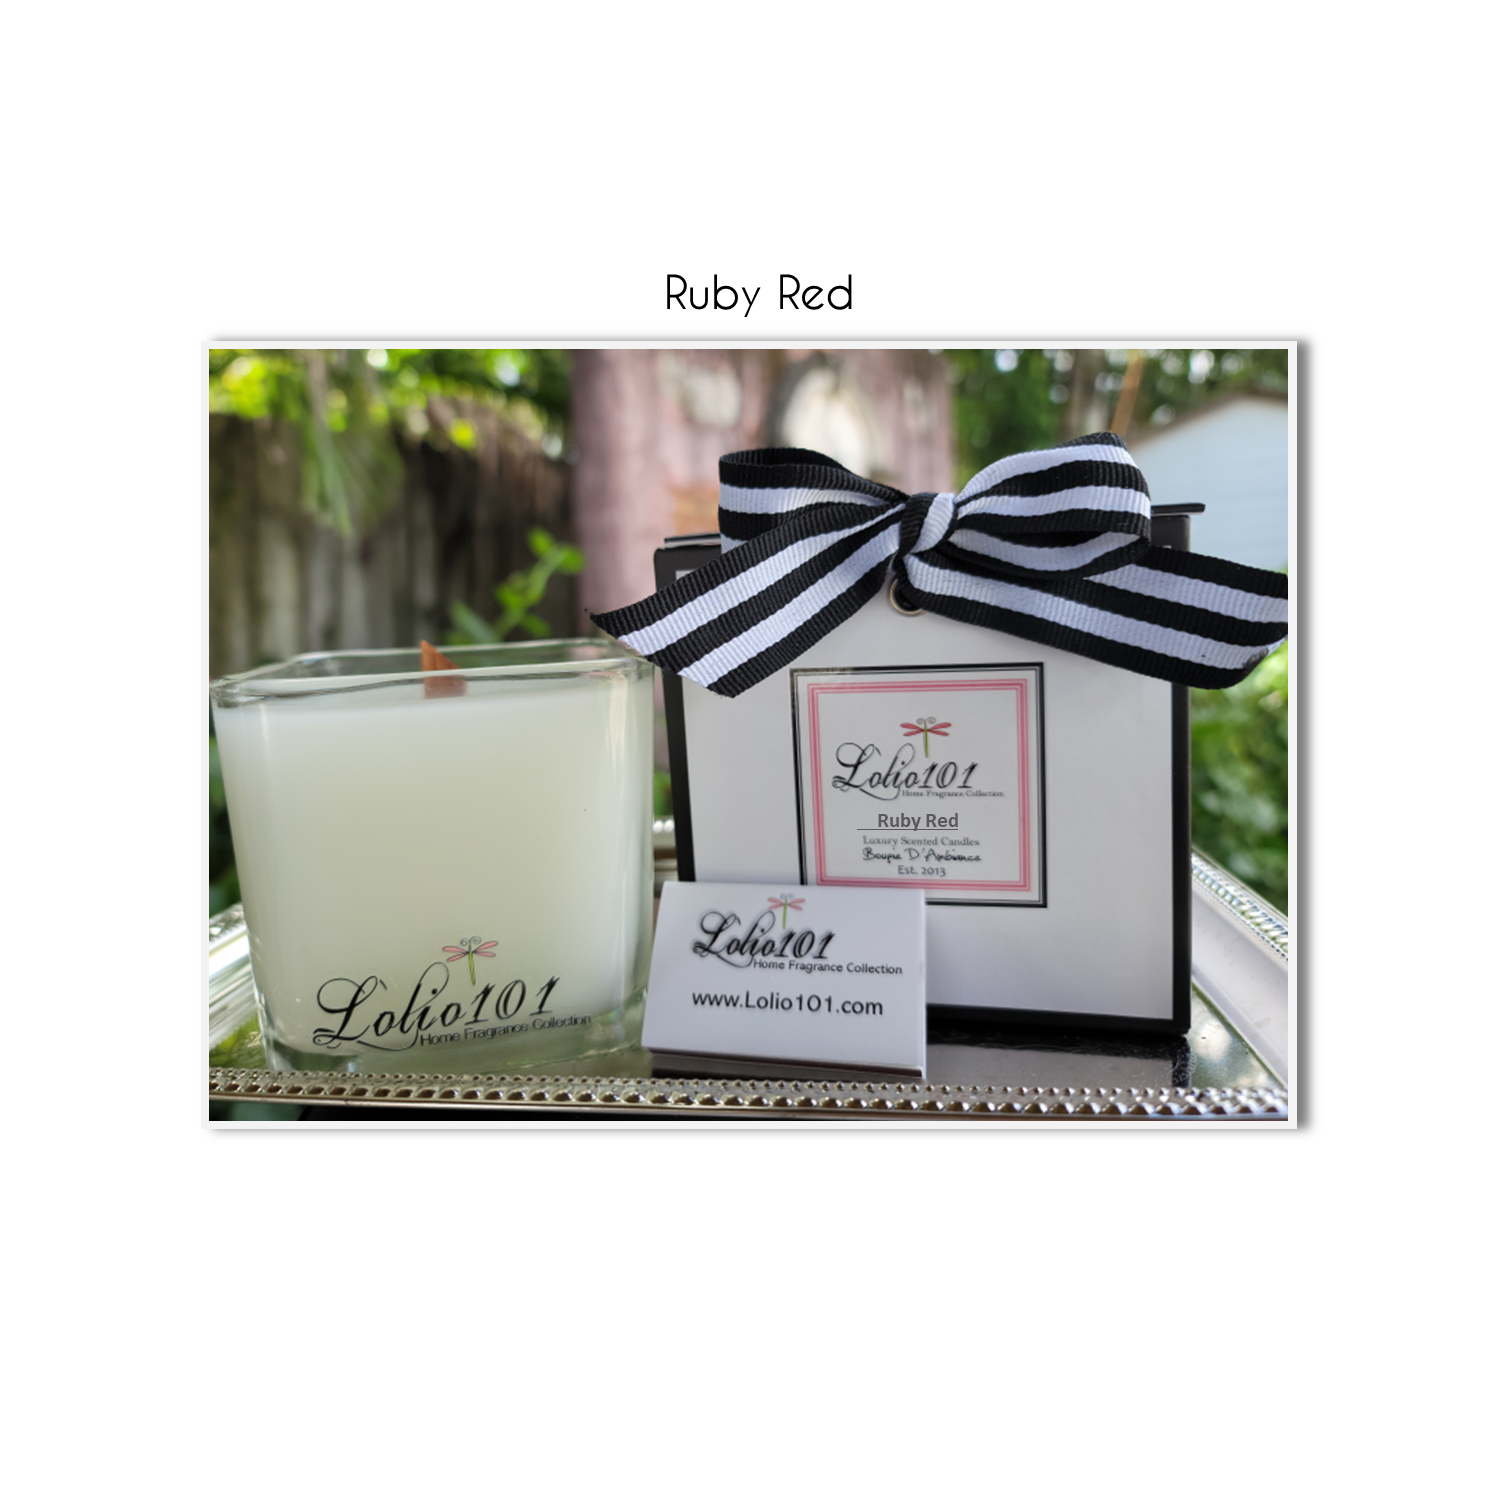 Ruby Red luxury scented candle 12oz/340g